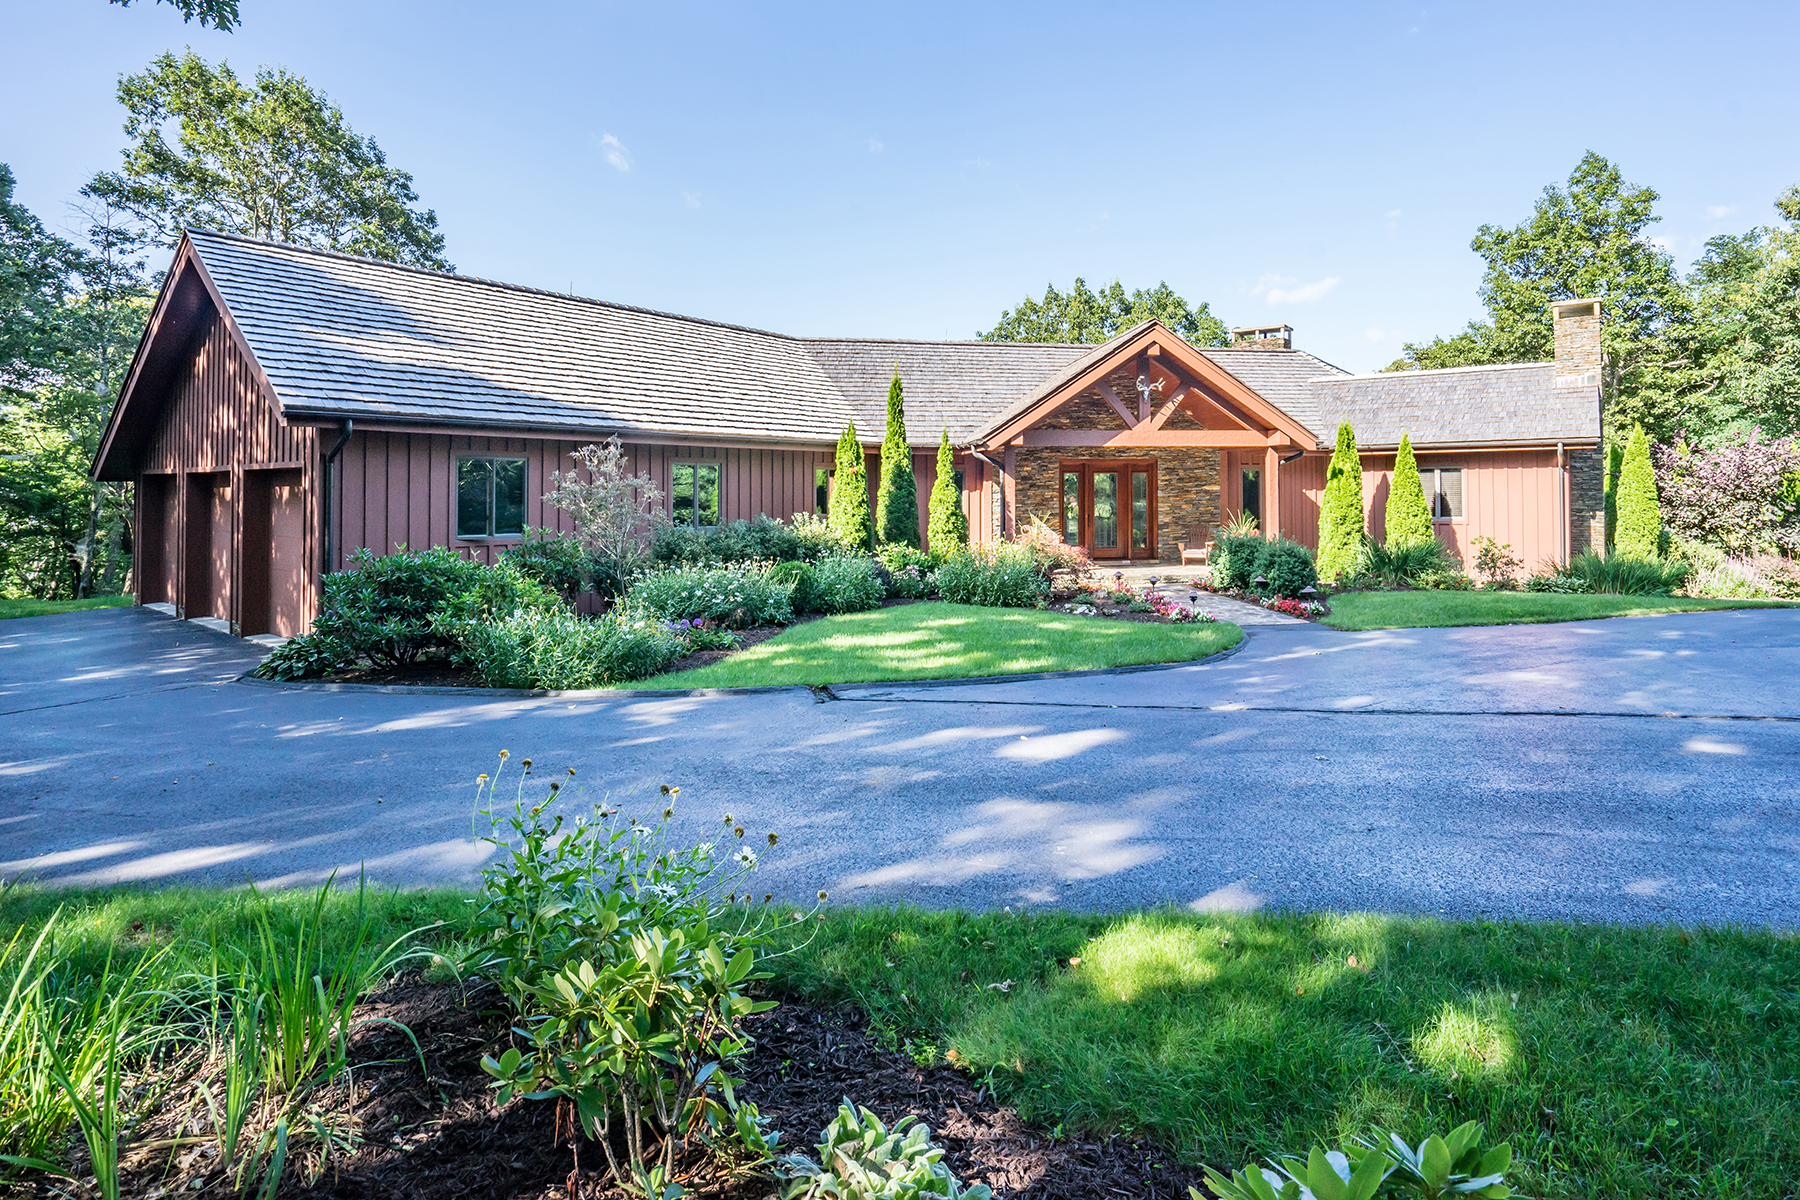 Single Family Home for Active at BLOWING ROCK 620-622 Sampson Blowing Rock, North Carolina 28605 United States